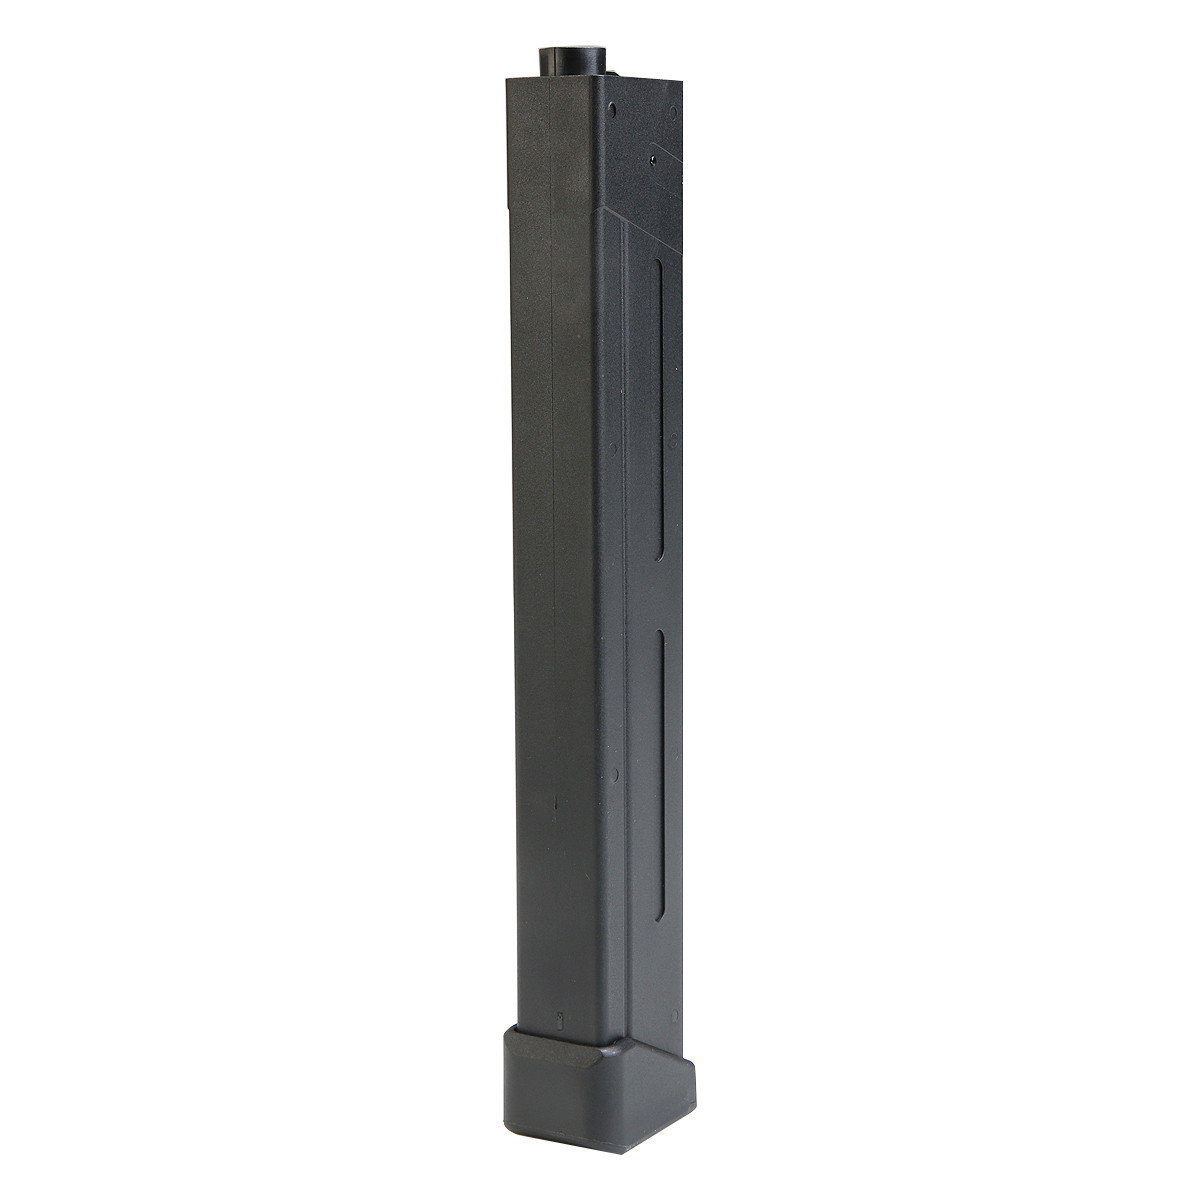 View larger image of Valken 280rd SMG Hi-Cap Airsoft Magazine